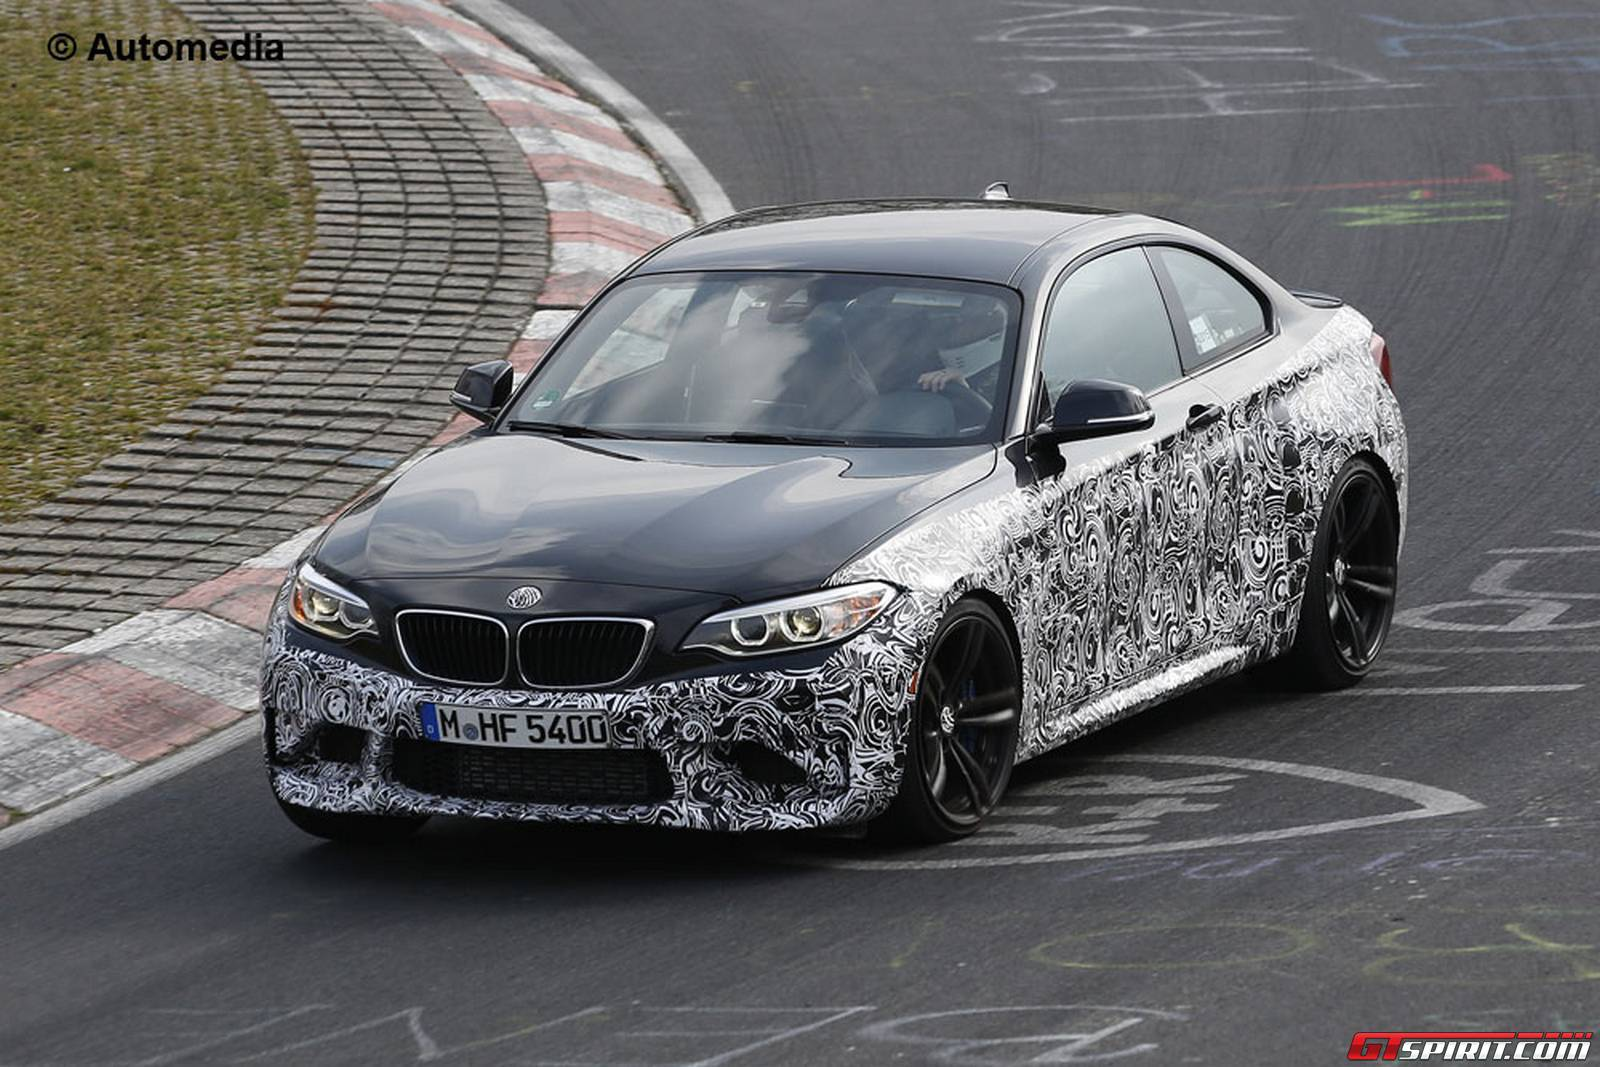 leaked bmw m2 options list confirms 6 speed manual gtspirit. Black Bedroom Furniture Sets. Home Design Ideas